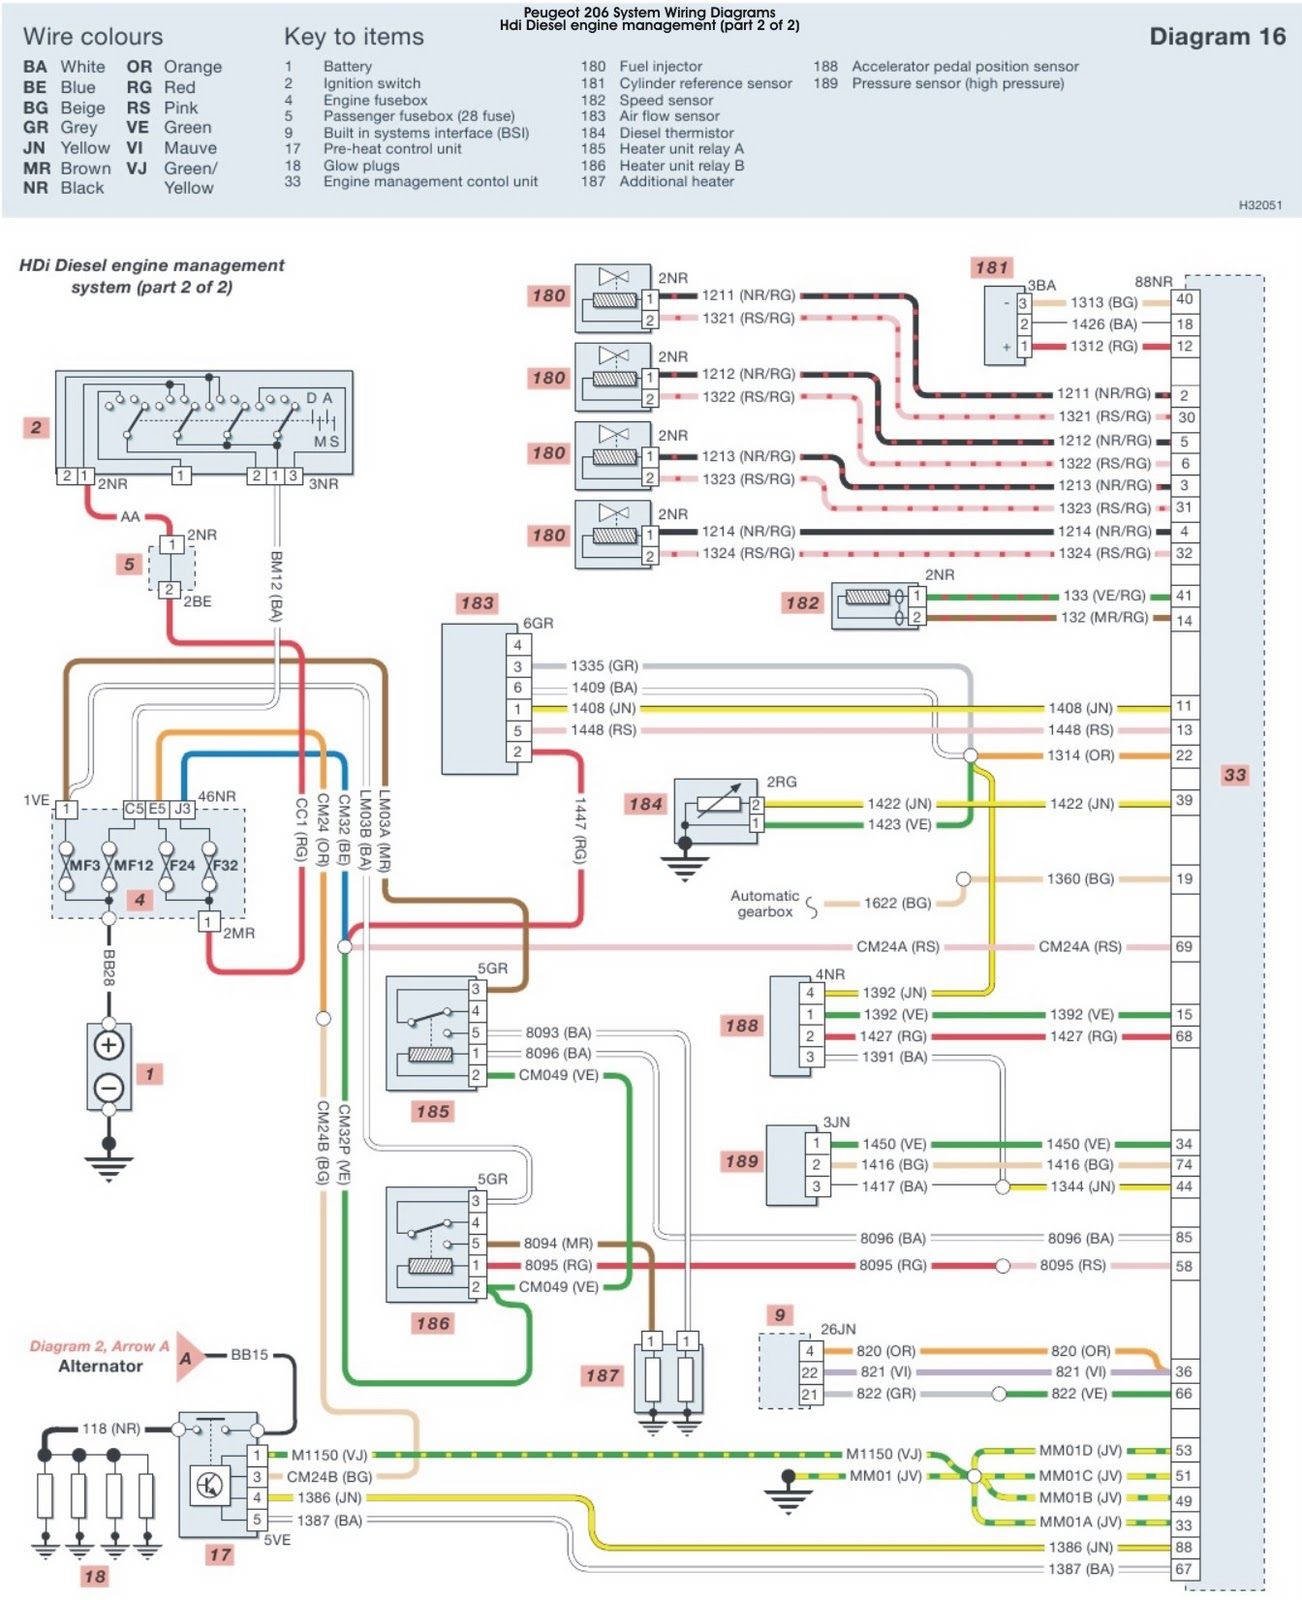 Peugeot 206 Wiring Diagram User Manual : V manual peugeot hdi diesel engine management system